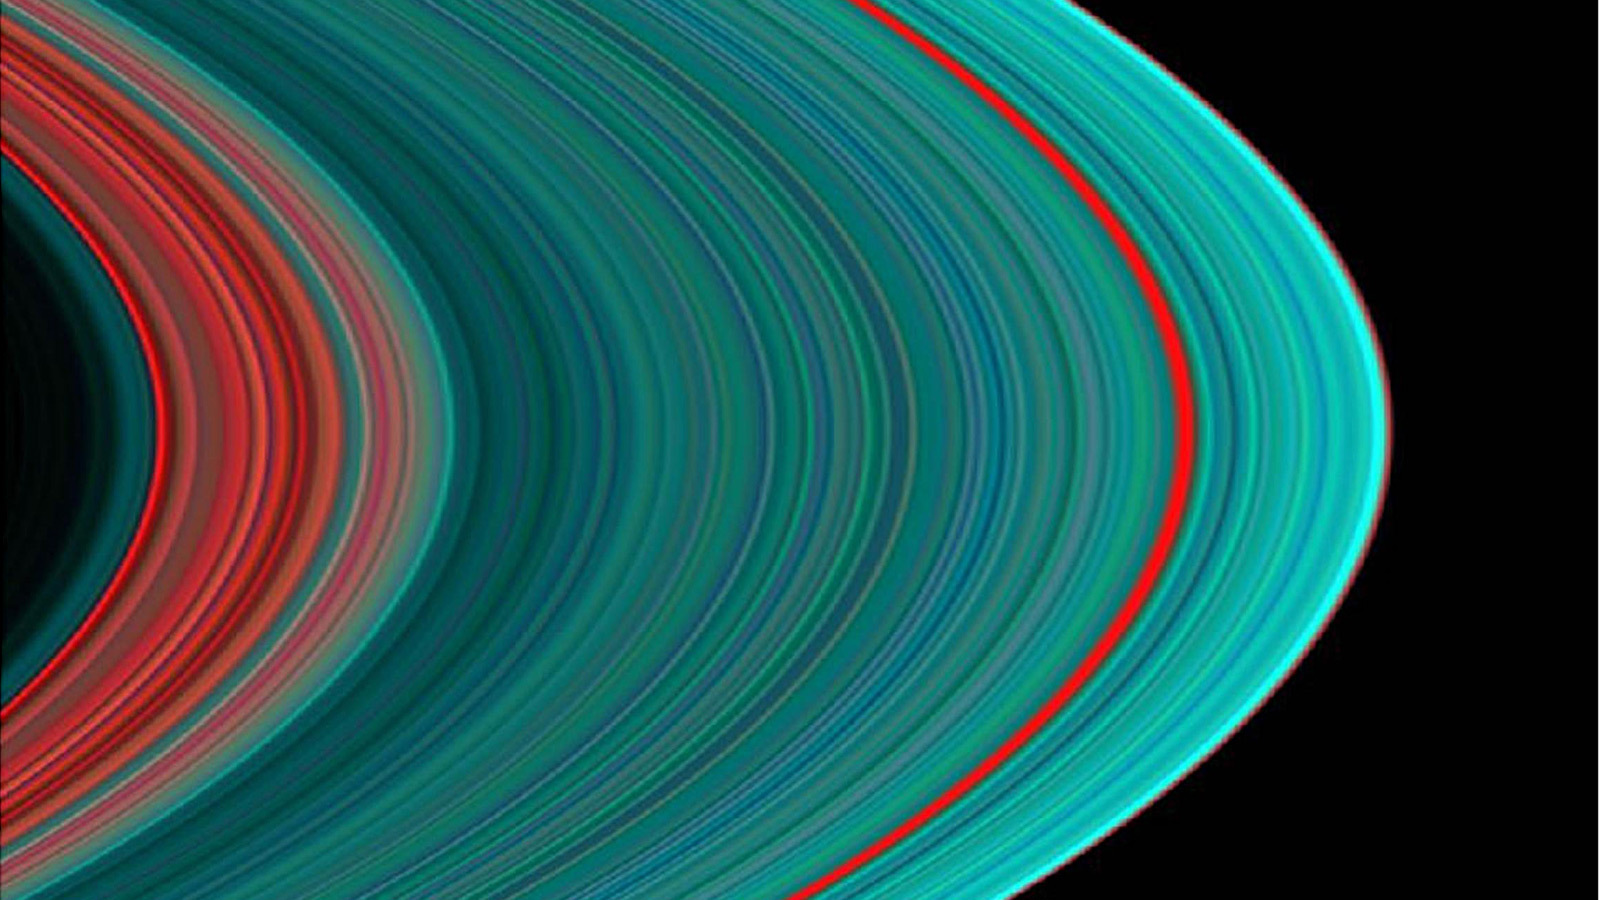 Color view of Saturn's rings.